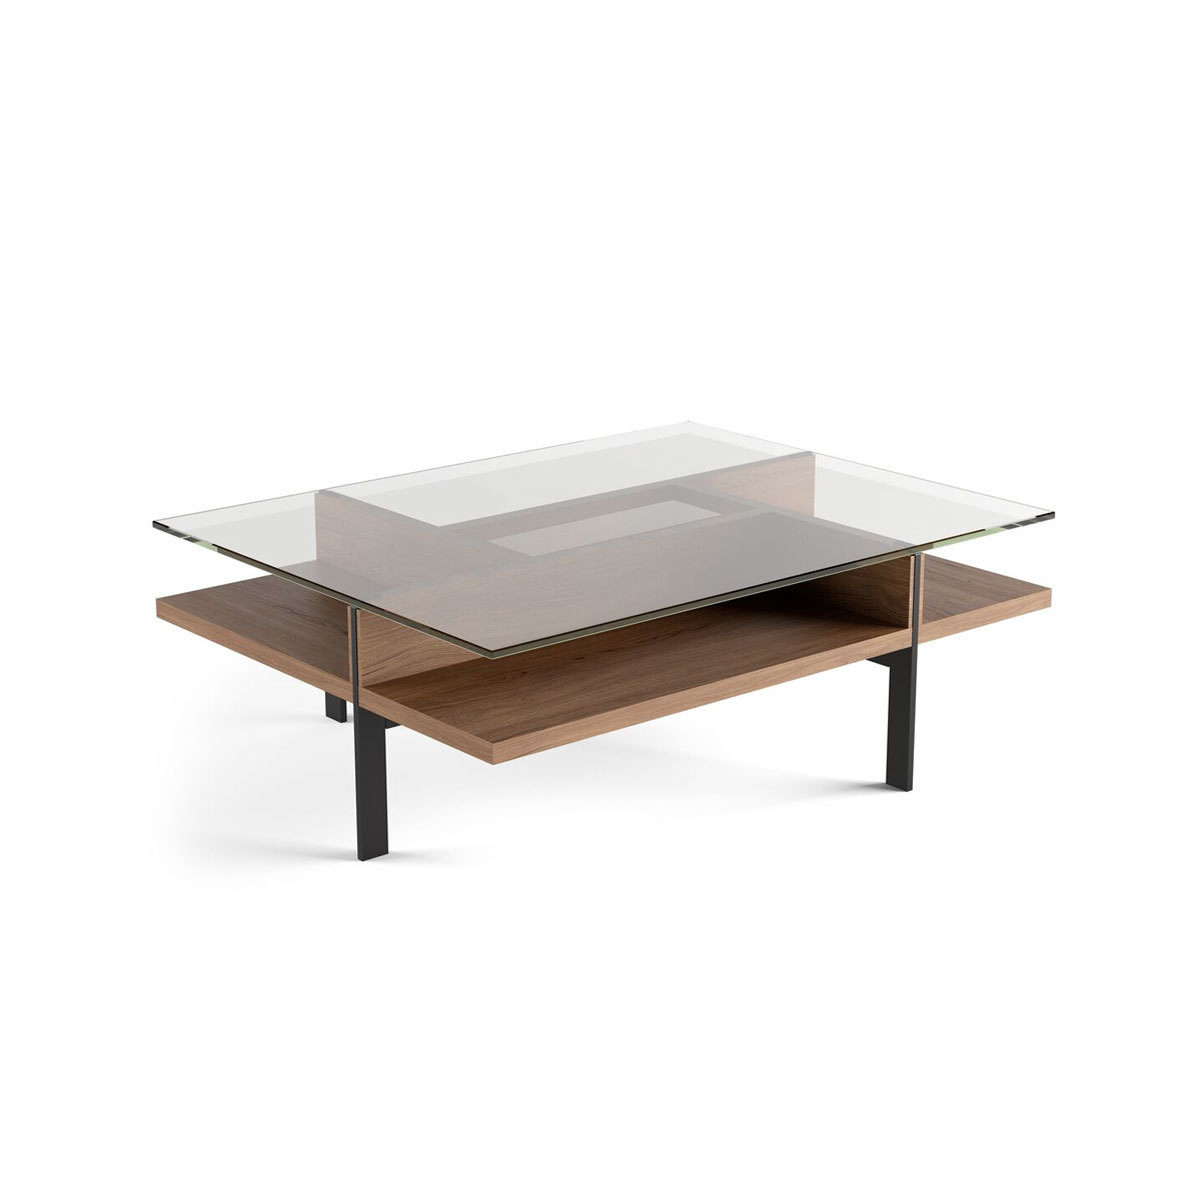 terrace rectangular coffee table 1152 bdi. Black Bedroom Furniture Sets. Home Design Ideas